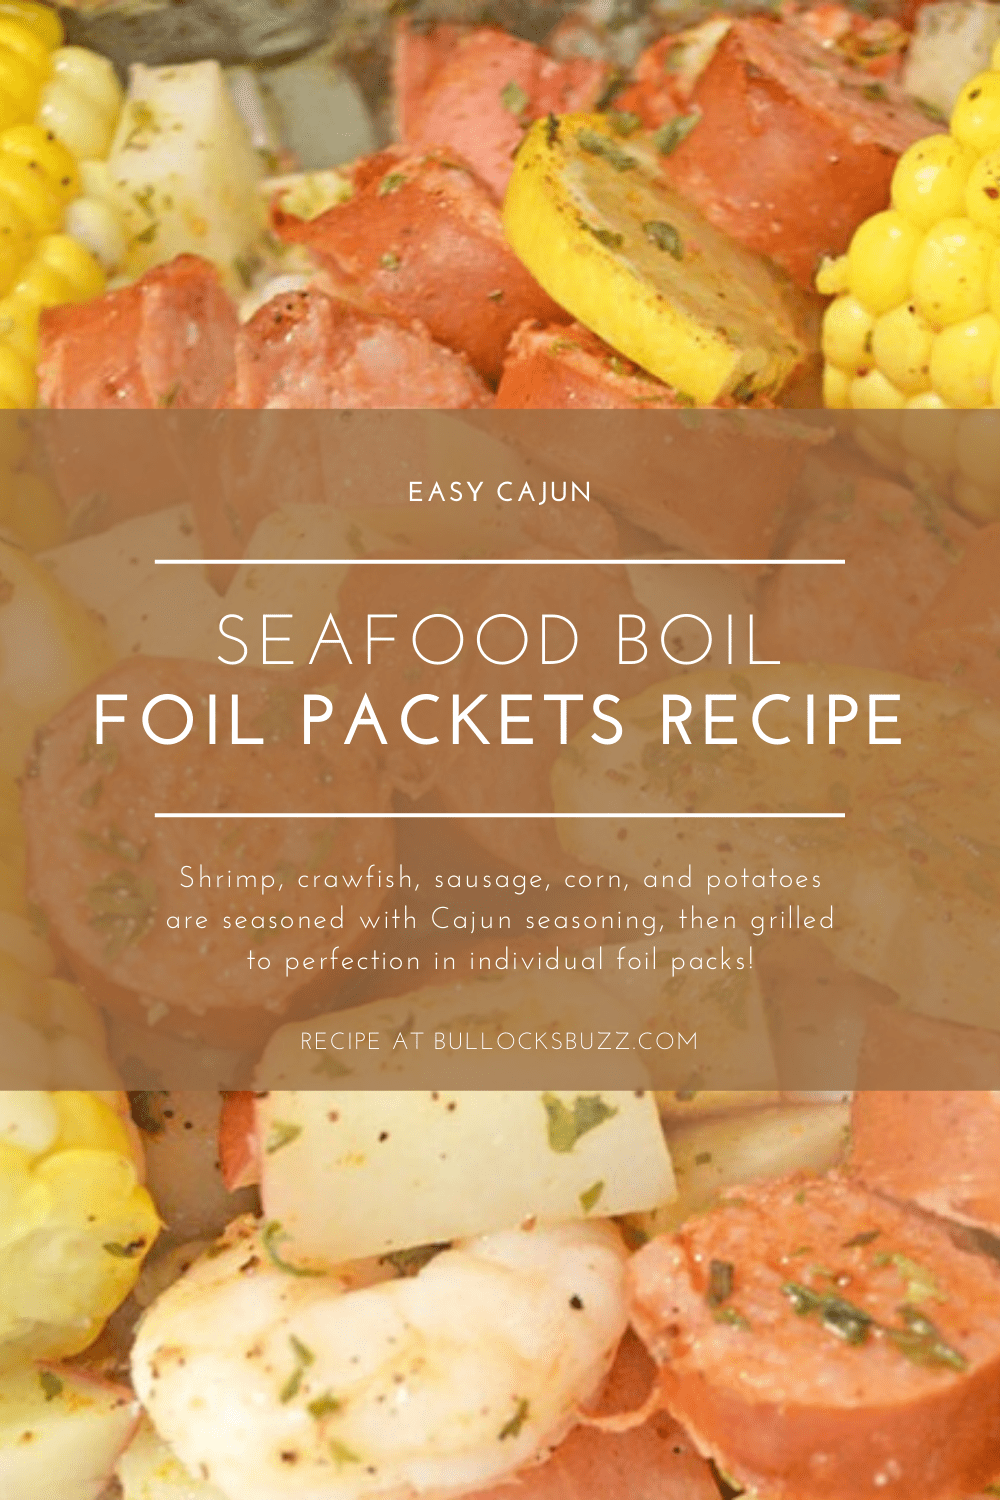 Filled with shrimp, crawfish, sausage, corn, and potatoes, then seasoned with Cajun seasoning, these easy Cajun Seafood Boil Foil Packets are packed full of flavor and have just the right amount of heat. Best of all, they're an easy-to-make and easy-to-clean meal! #recipes #dinner